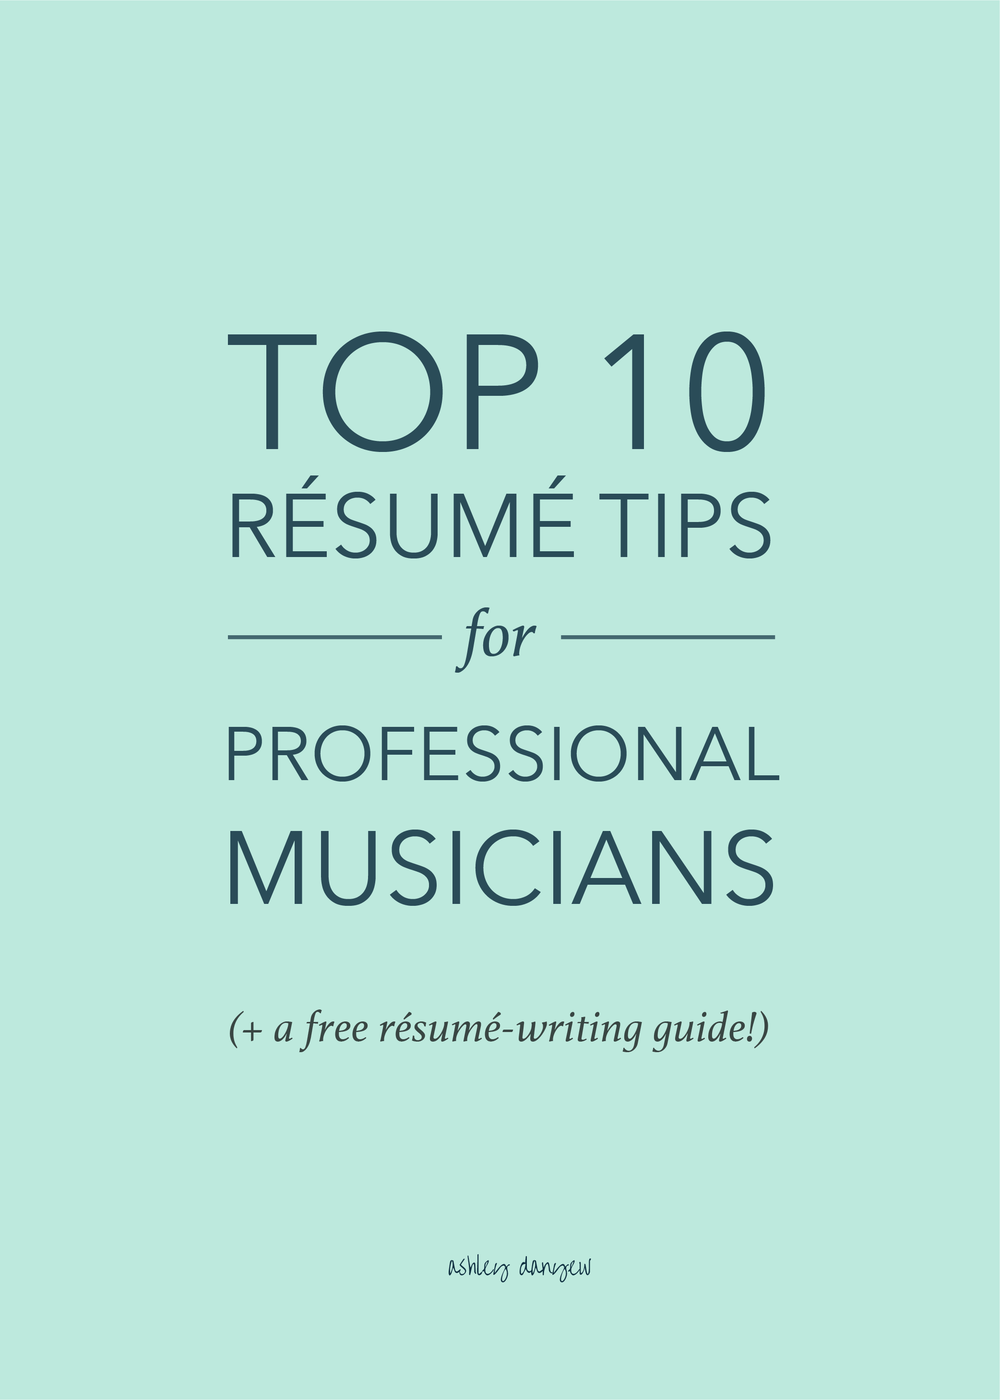 Top 10 Resume Tips For Professional Musicians 05.png  Top 10 Resume Tips